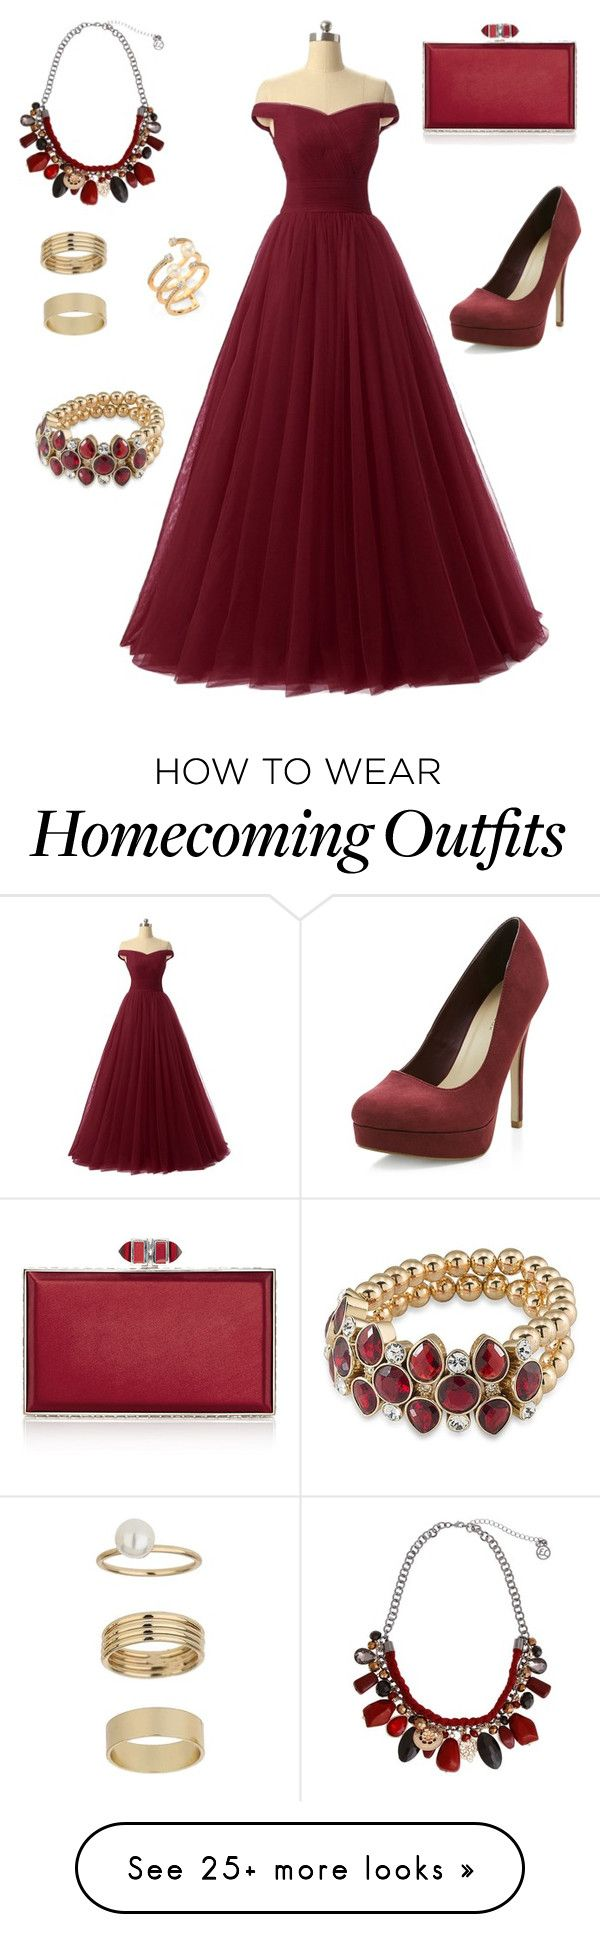 """""""Ball party"""" by ly-angel on Polyvore featuring New Look, Erica Lyons, Carolee, Judith Leiber, Hueb and Miss Selfridge"""